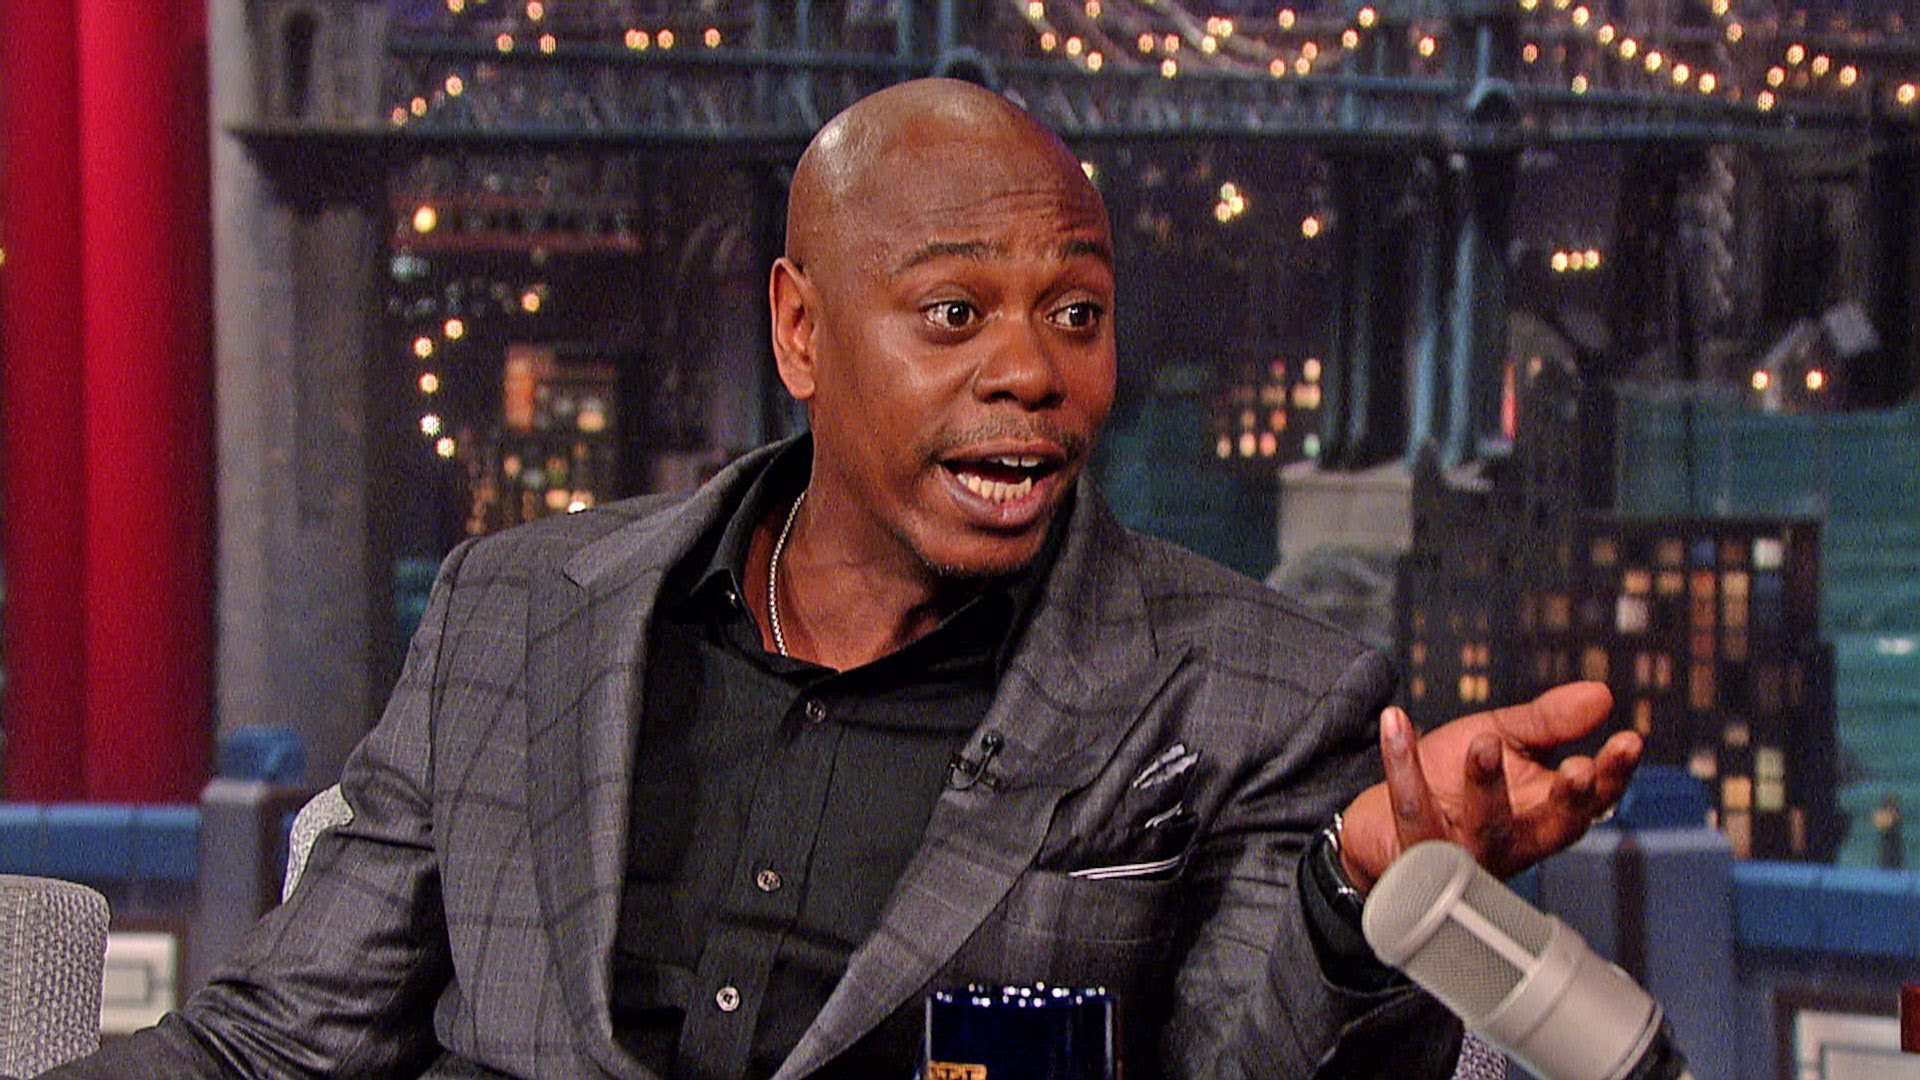 Letterman Asks Dave Chappelle Why He Left The Chappelle Show - GotHiphop